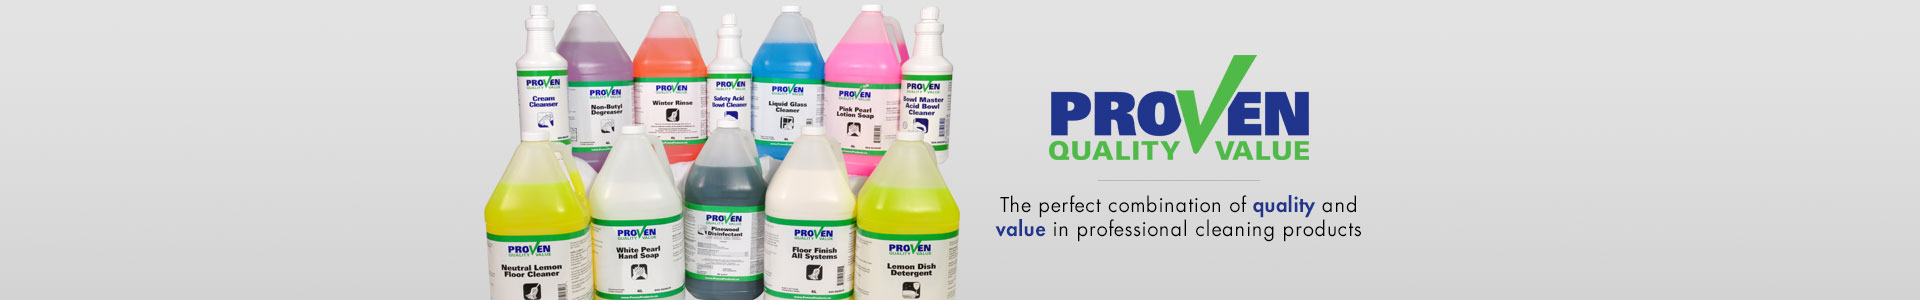 Proven - The perfect combination of quality and value in professional cleaning products